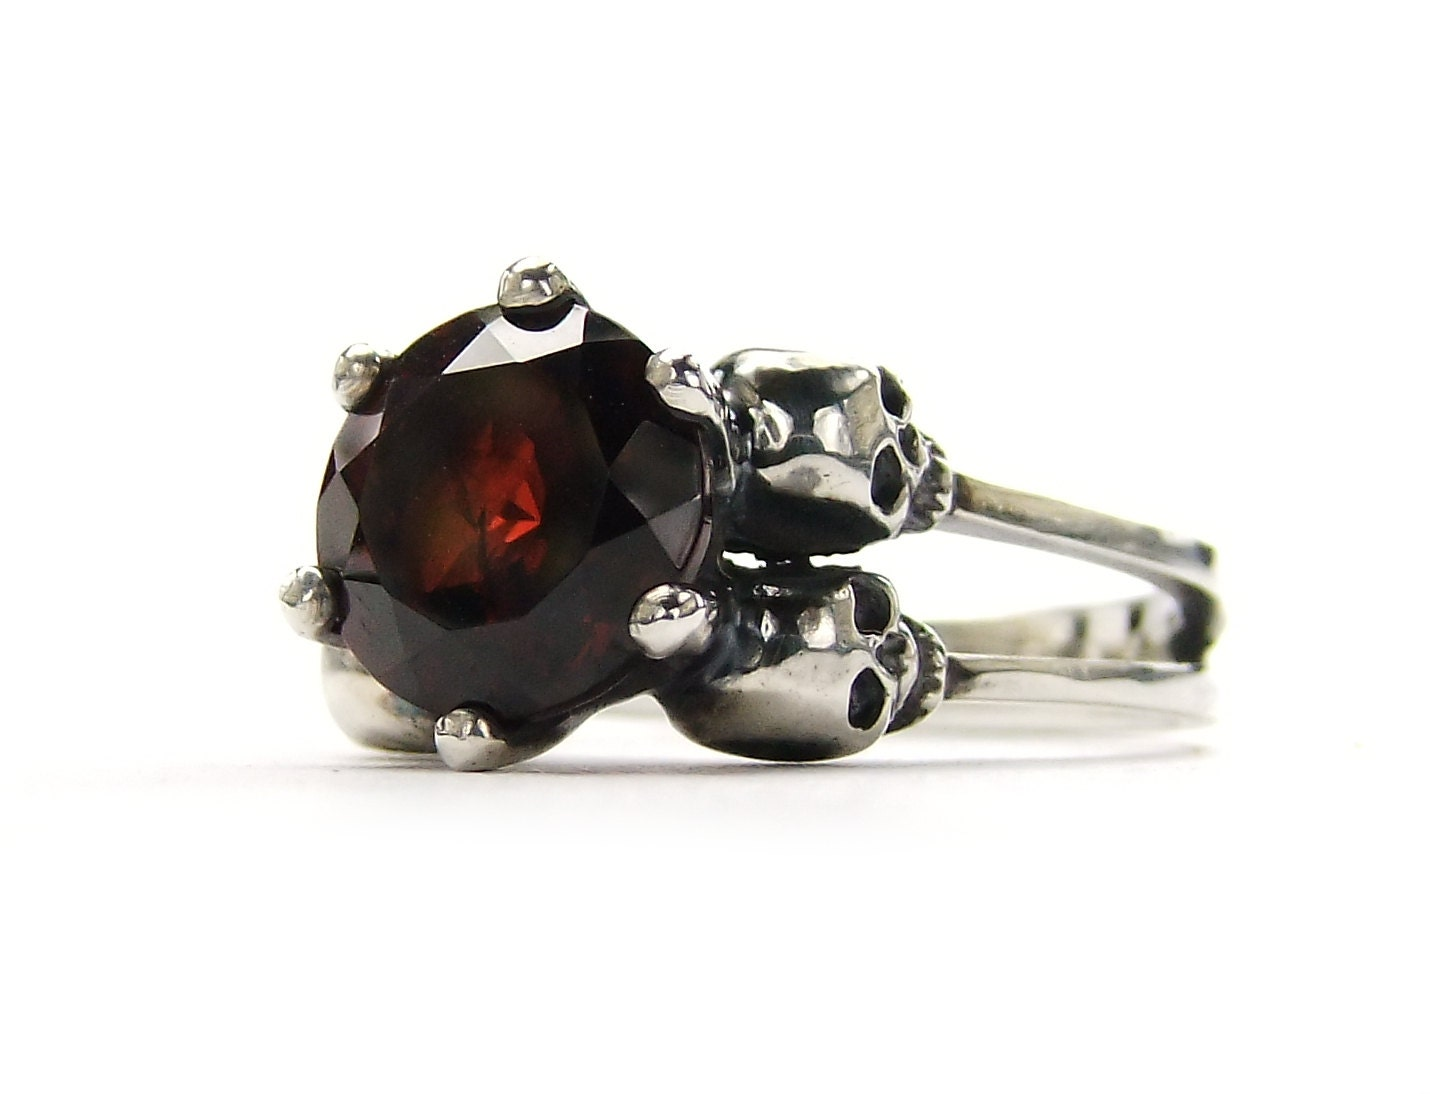 Skull Wedding Ring Blood Garnet Goth Wedding Sterling Silver. Internet Watches. Black Iron Pendant. Trapezoid Diamond. Heavy Duty Chains. Moon Watches. Inlaid Earrings. Bugle Beads. Top Men Watches